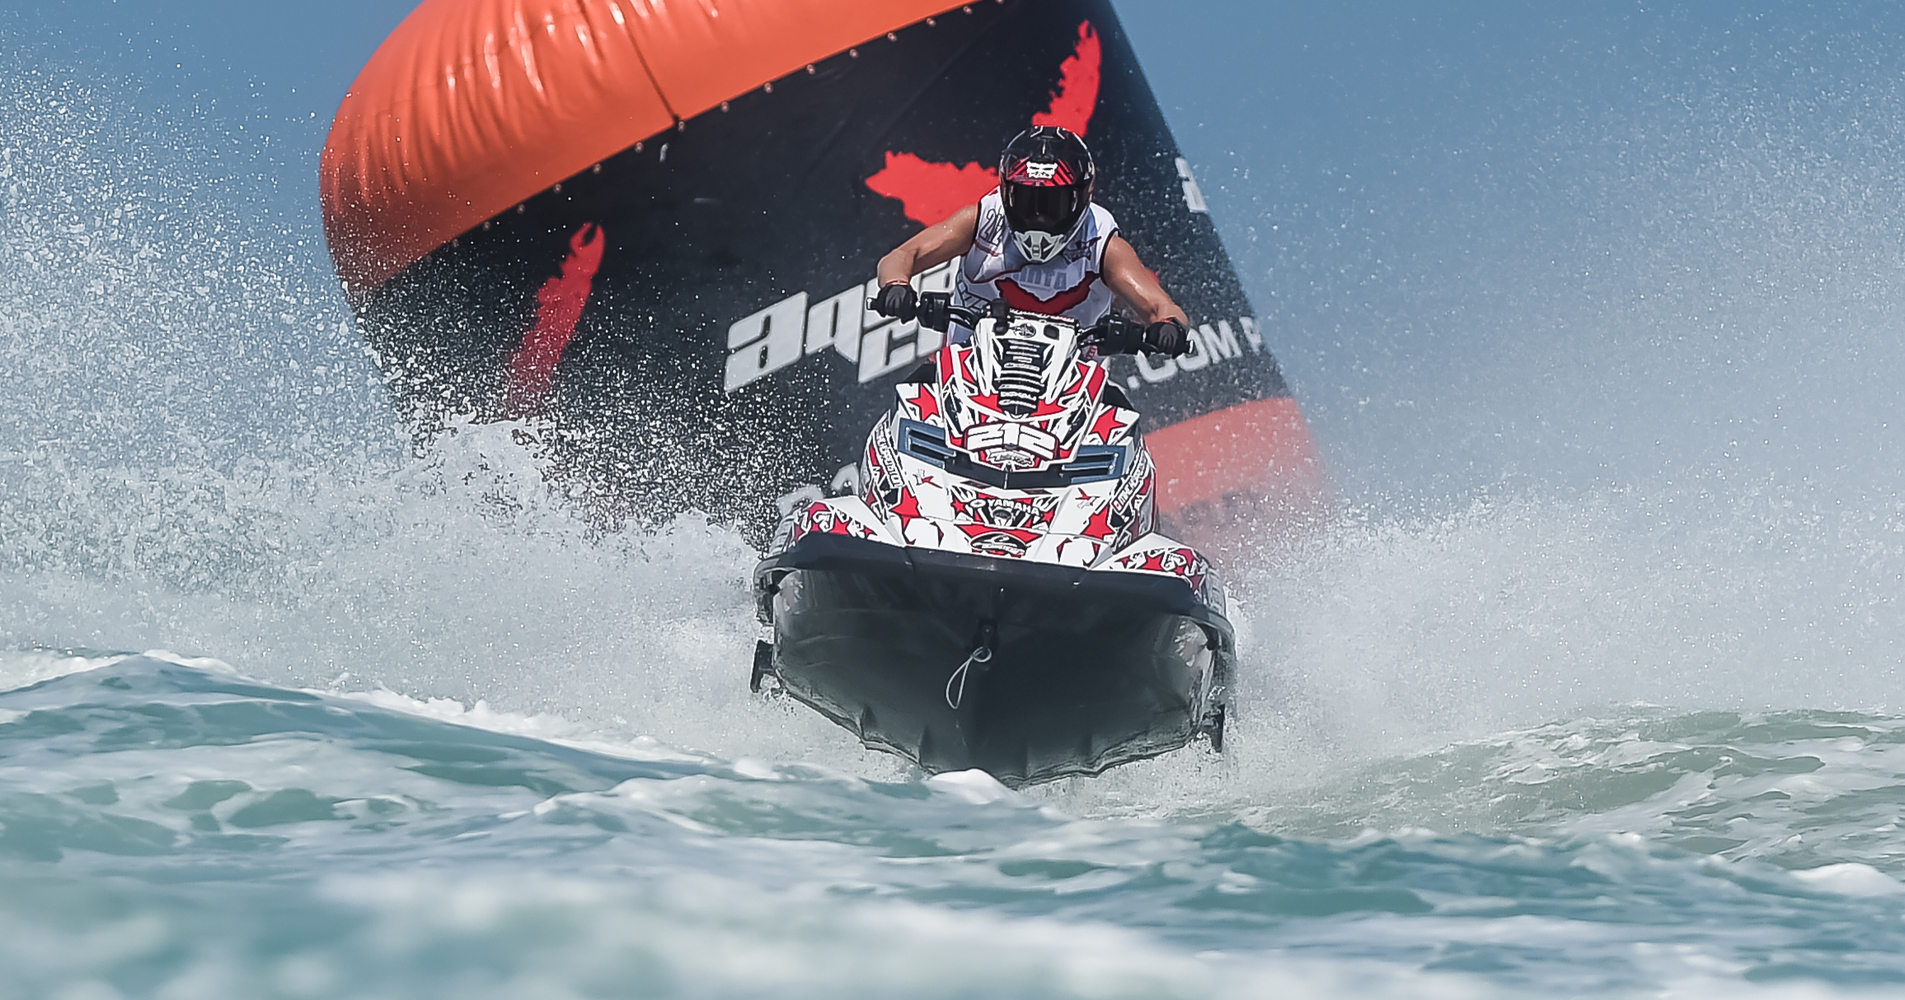 Klippenstein has been racing with AquaX for several years and is a consistent top performer in the Pro Series